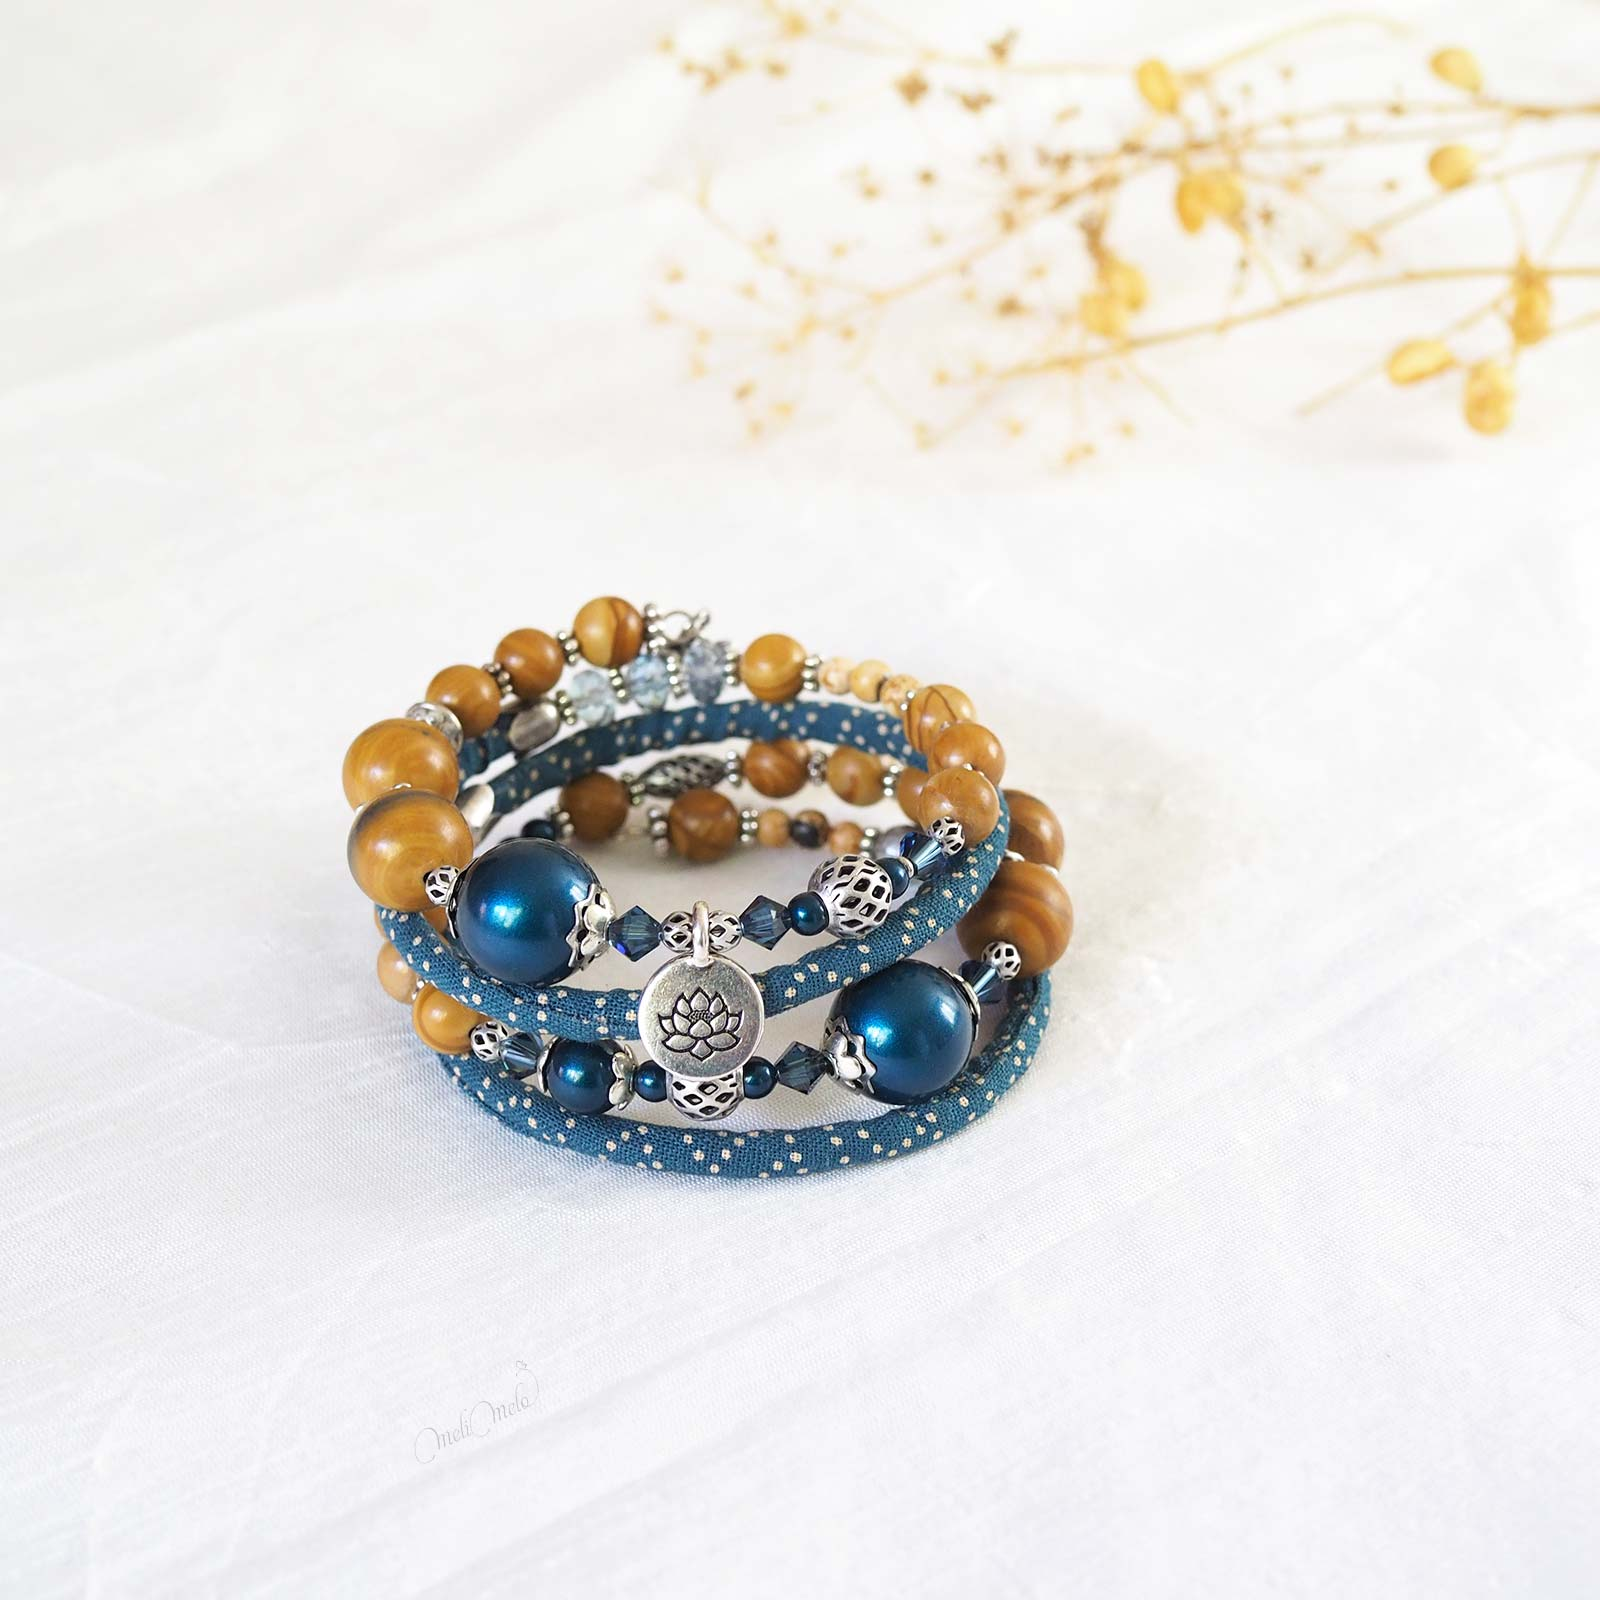 Bracelet Seikaiha Blue gemmes Jaspe perles nacrées teal fleur lotus Collection Japon laboutiquedemelimelo